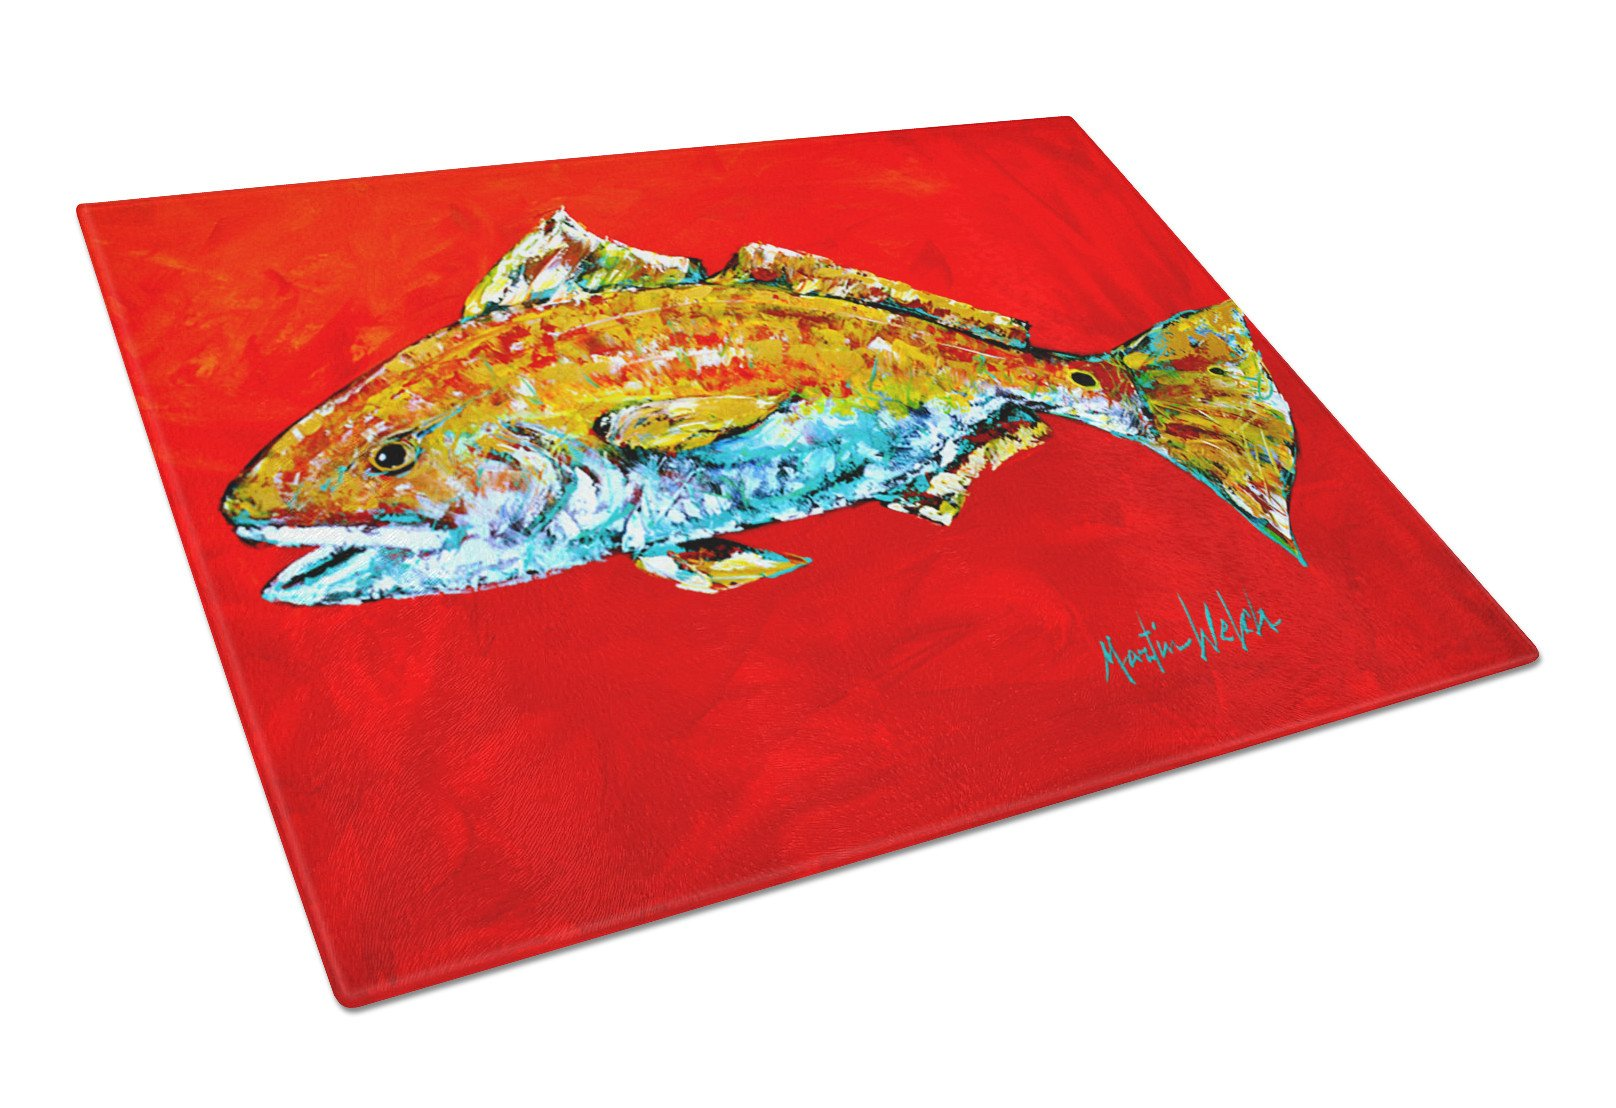 Fish - Red Fish Red Head Glass Cutting Board Large by Caroline's Treasures